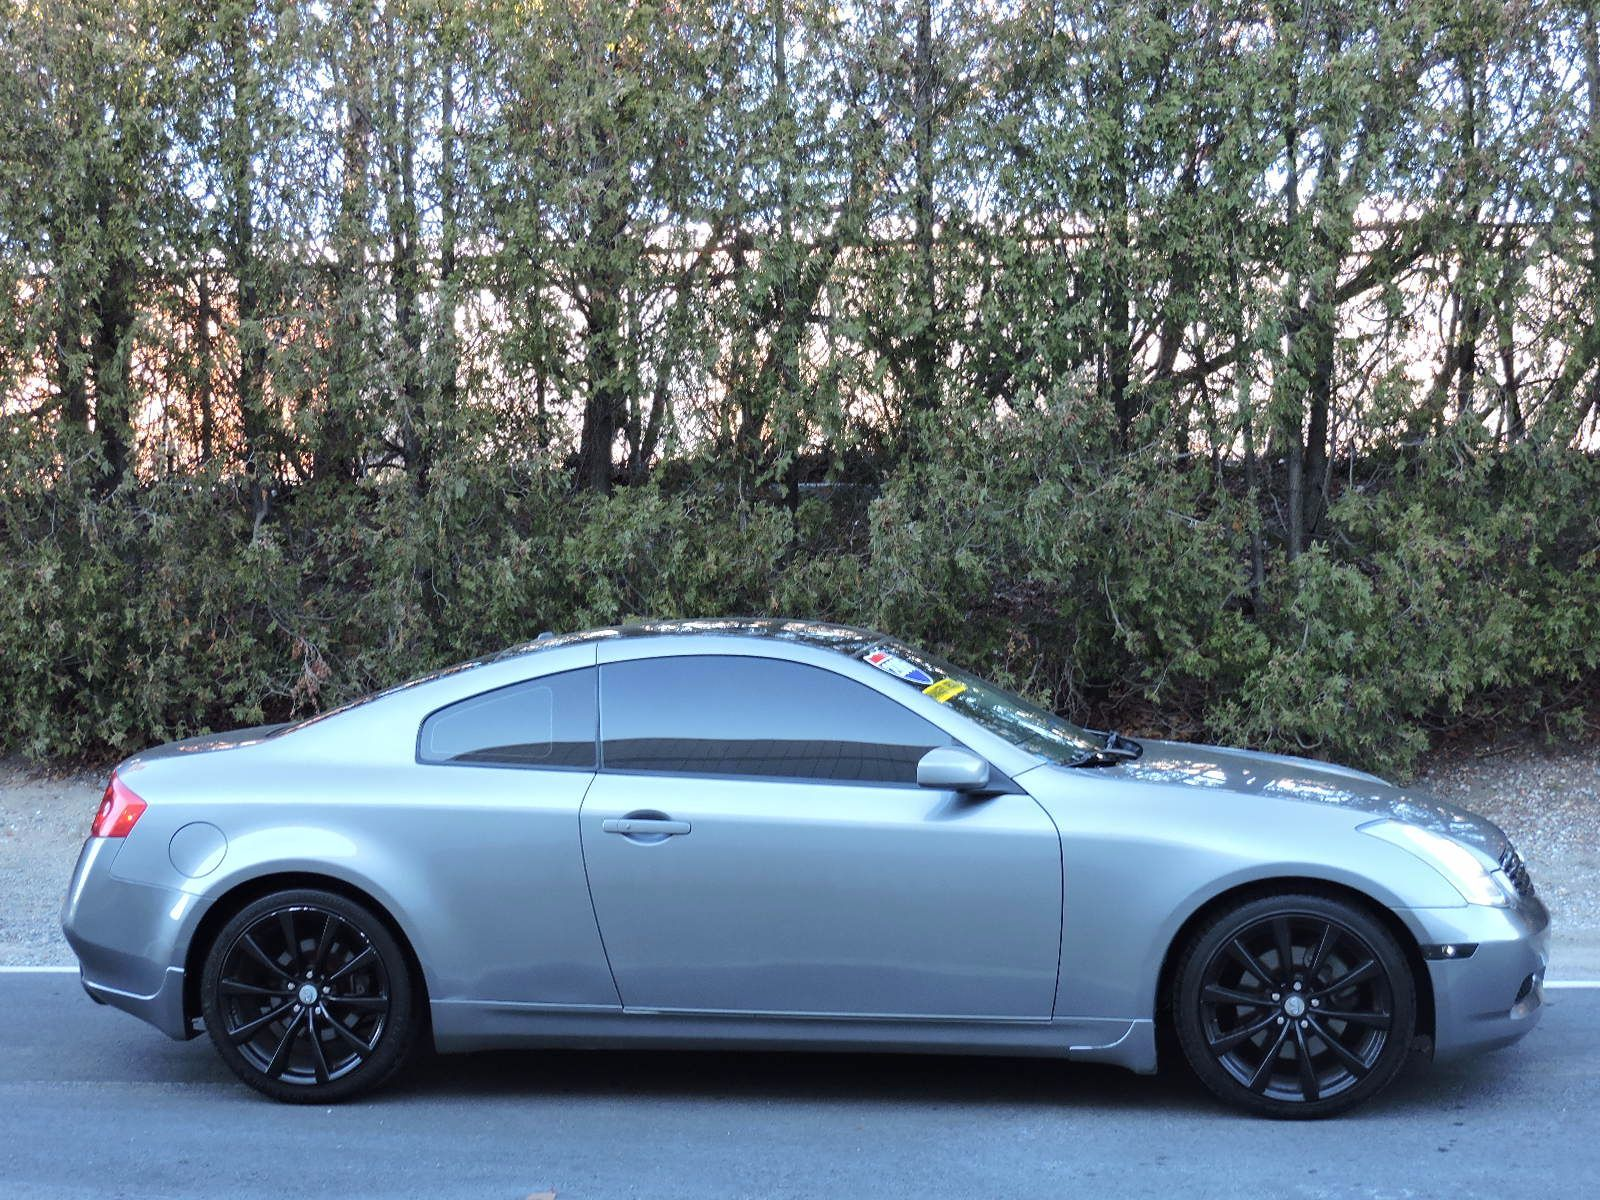 used 2006 infiniti g35 coupe pop at saugus auto mall. Black Bedroom Furniture Sets. Home Design Ideas